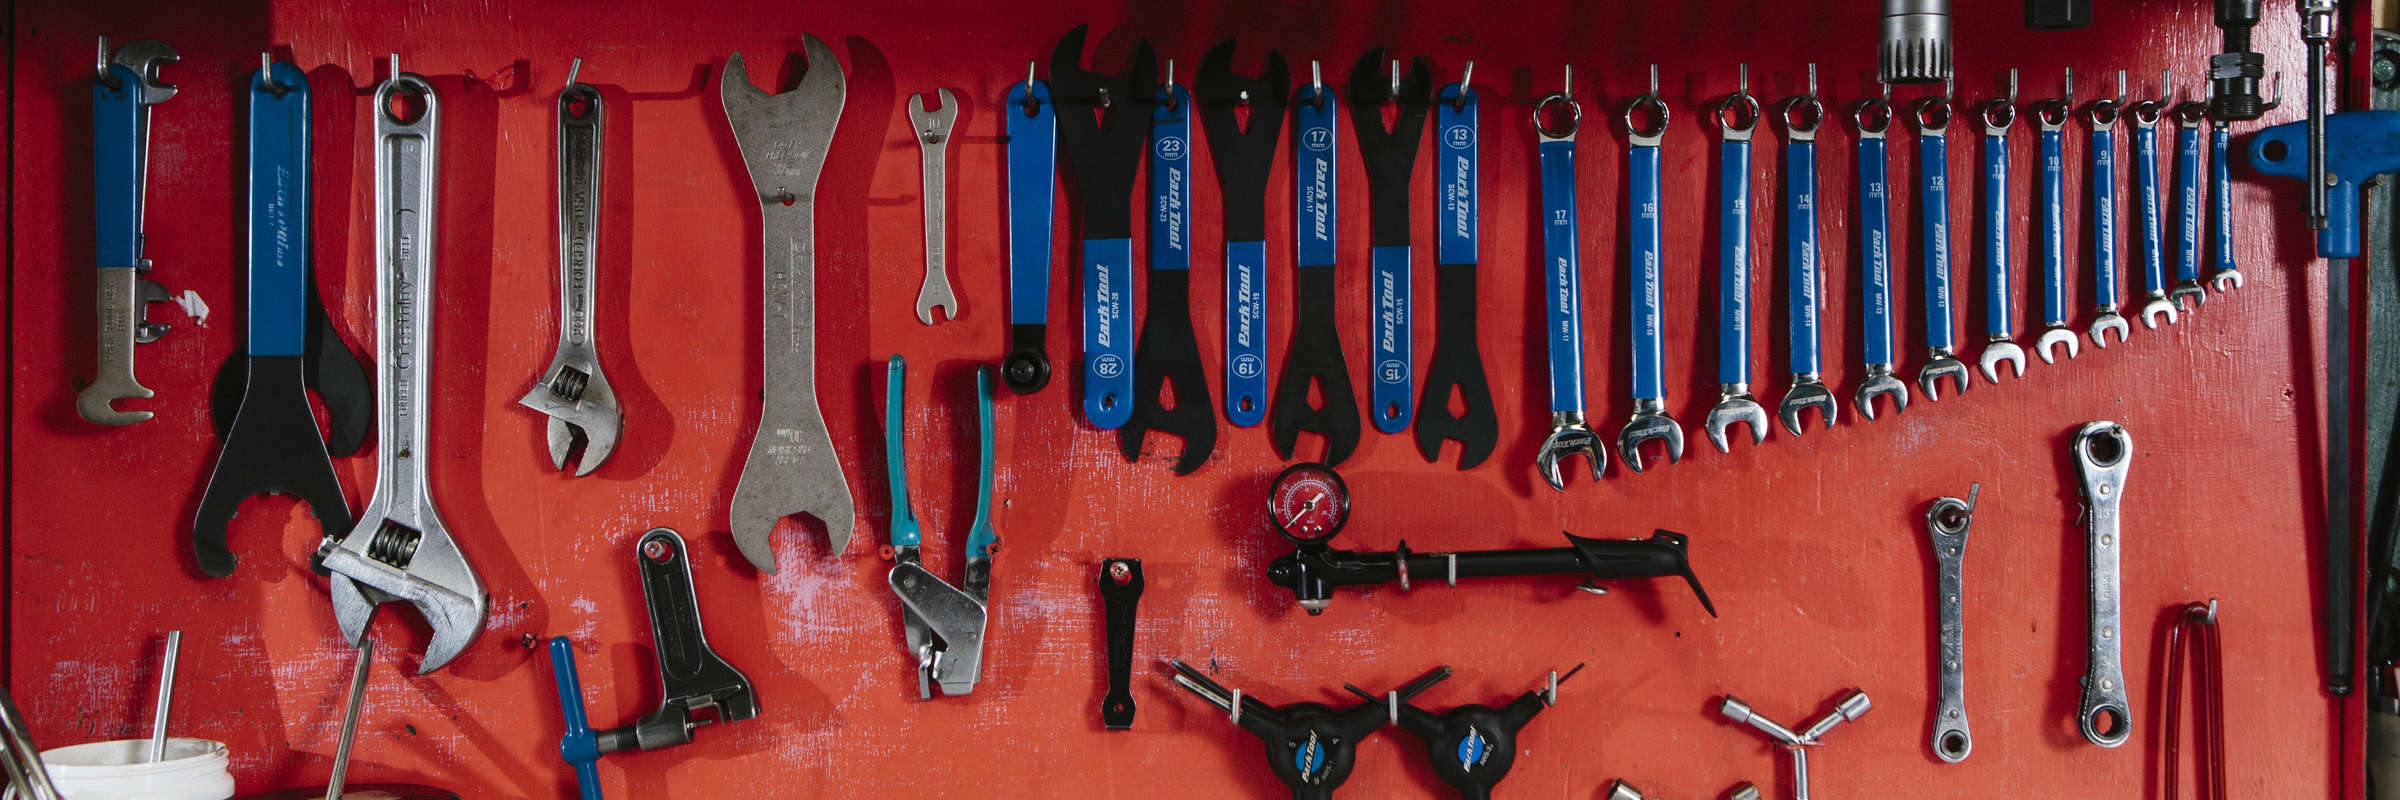 Specialty bicycle tools hanging on a workbench